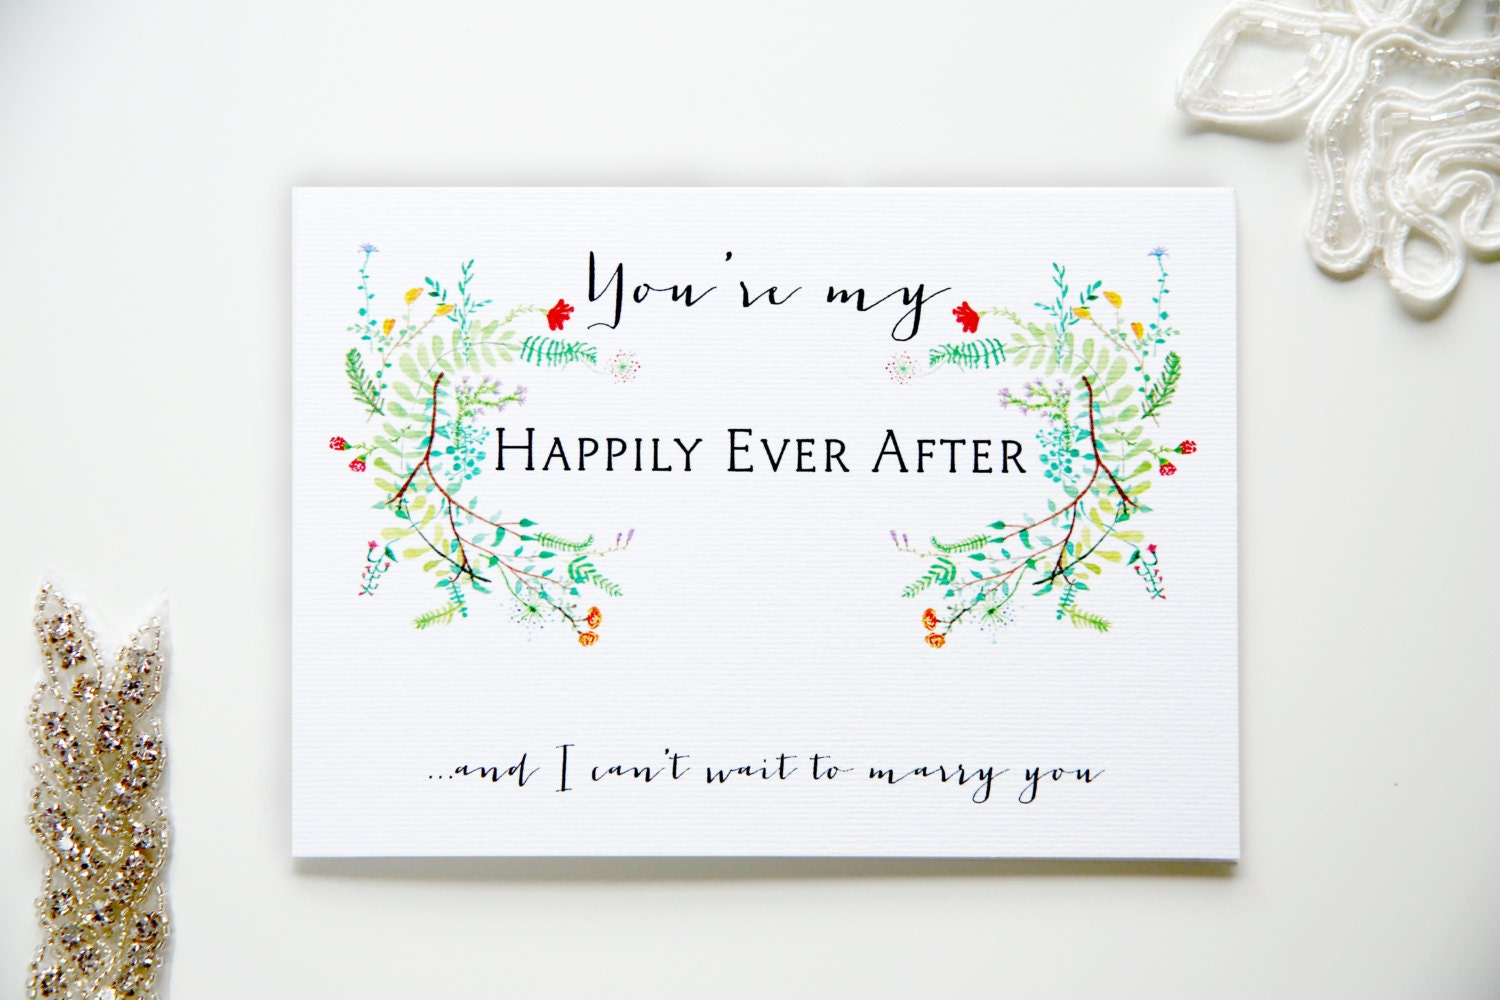 Wedding day cards for each other i can t wait to marry you wedding day - Like This Item